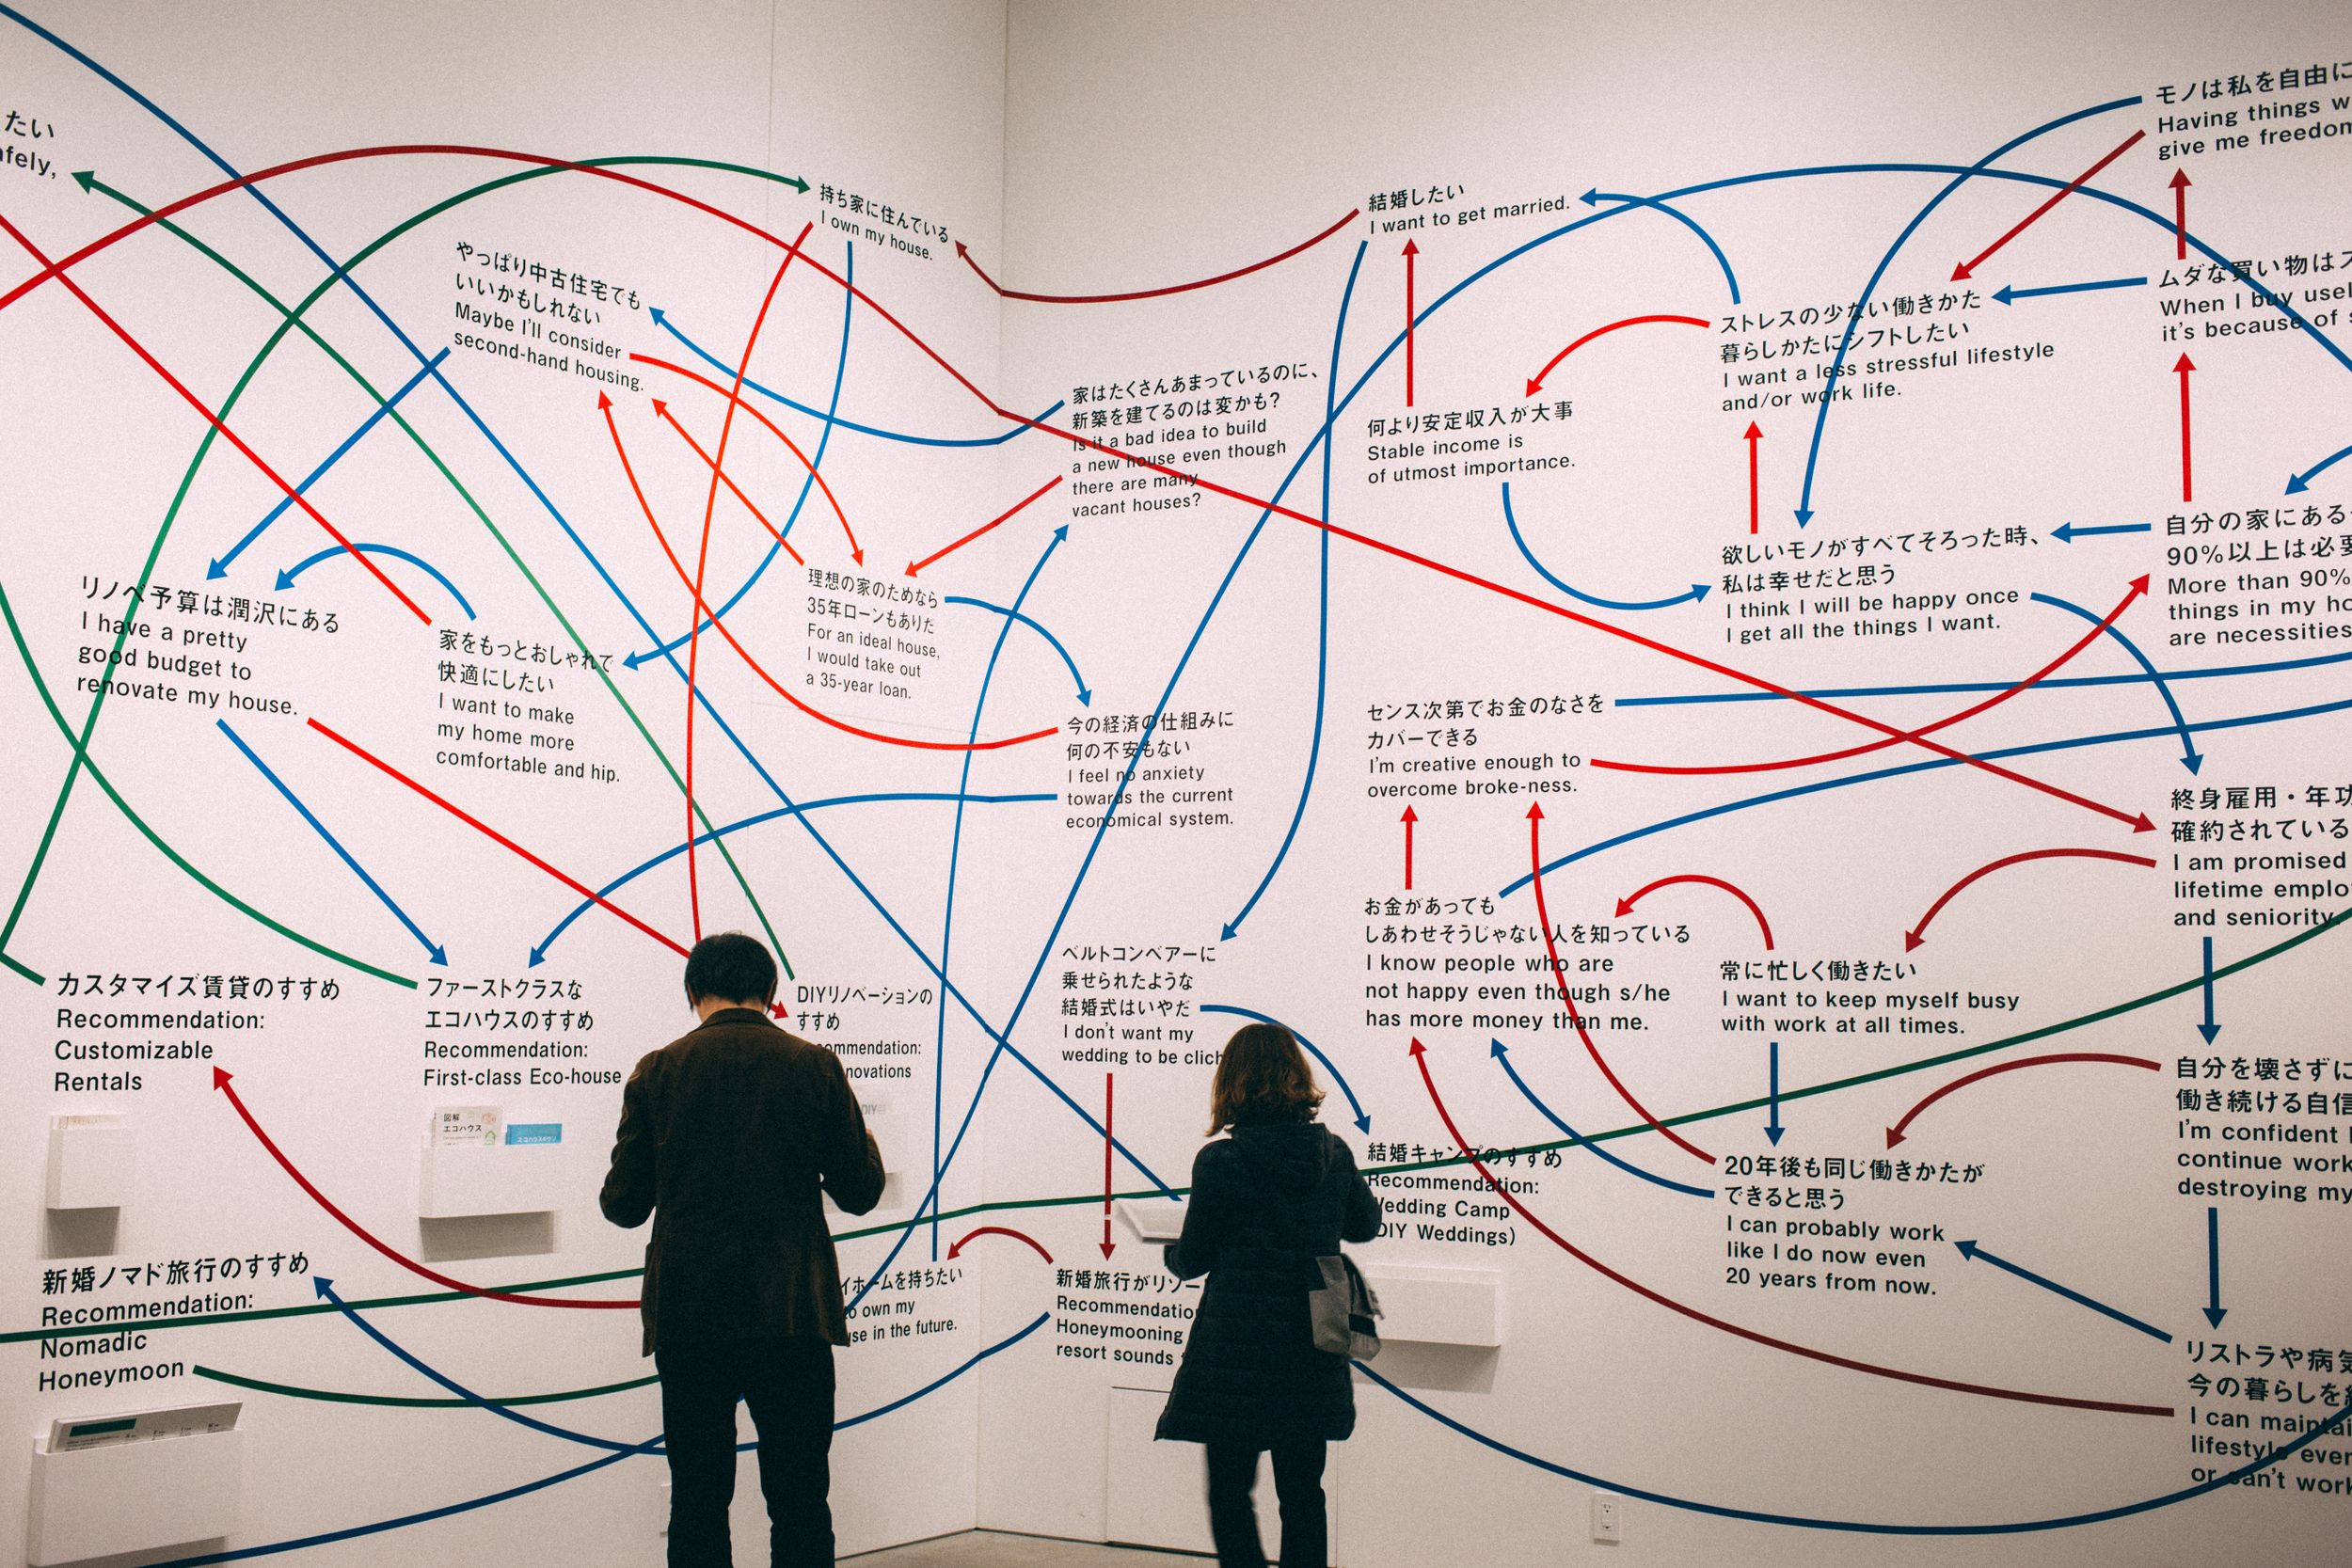 The mind map of human thoughts